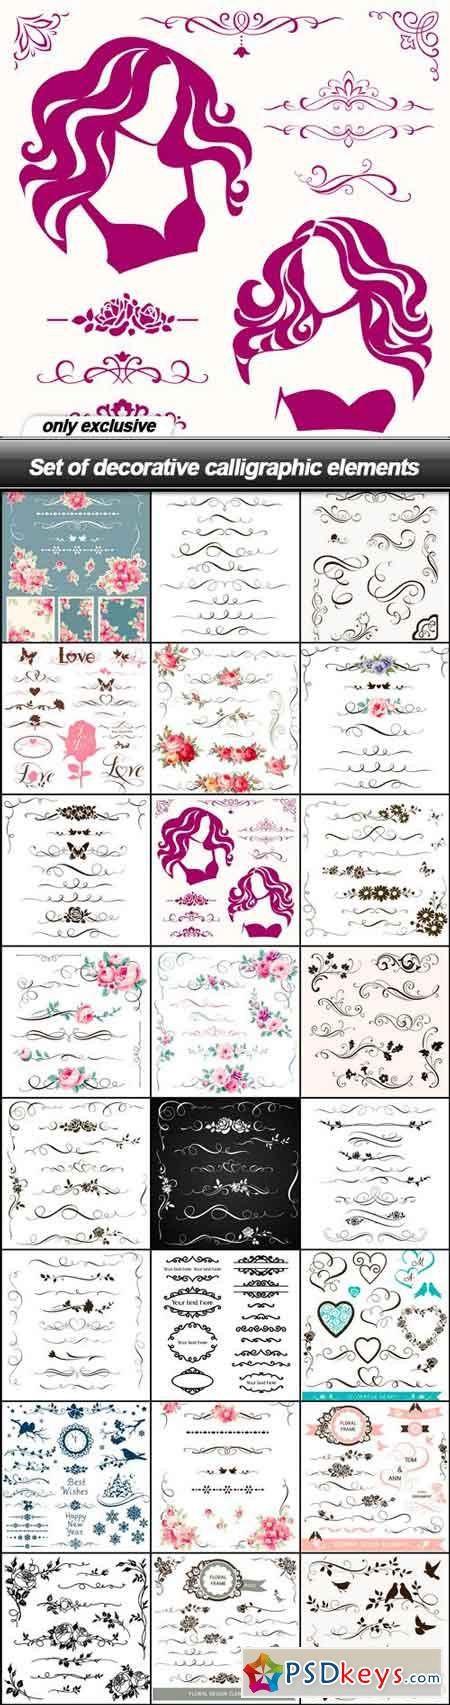 Set of decorative calligraphic elements - 24 EPS